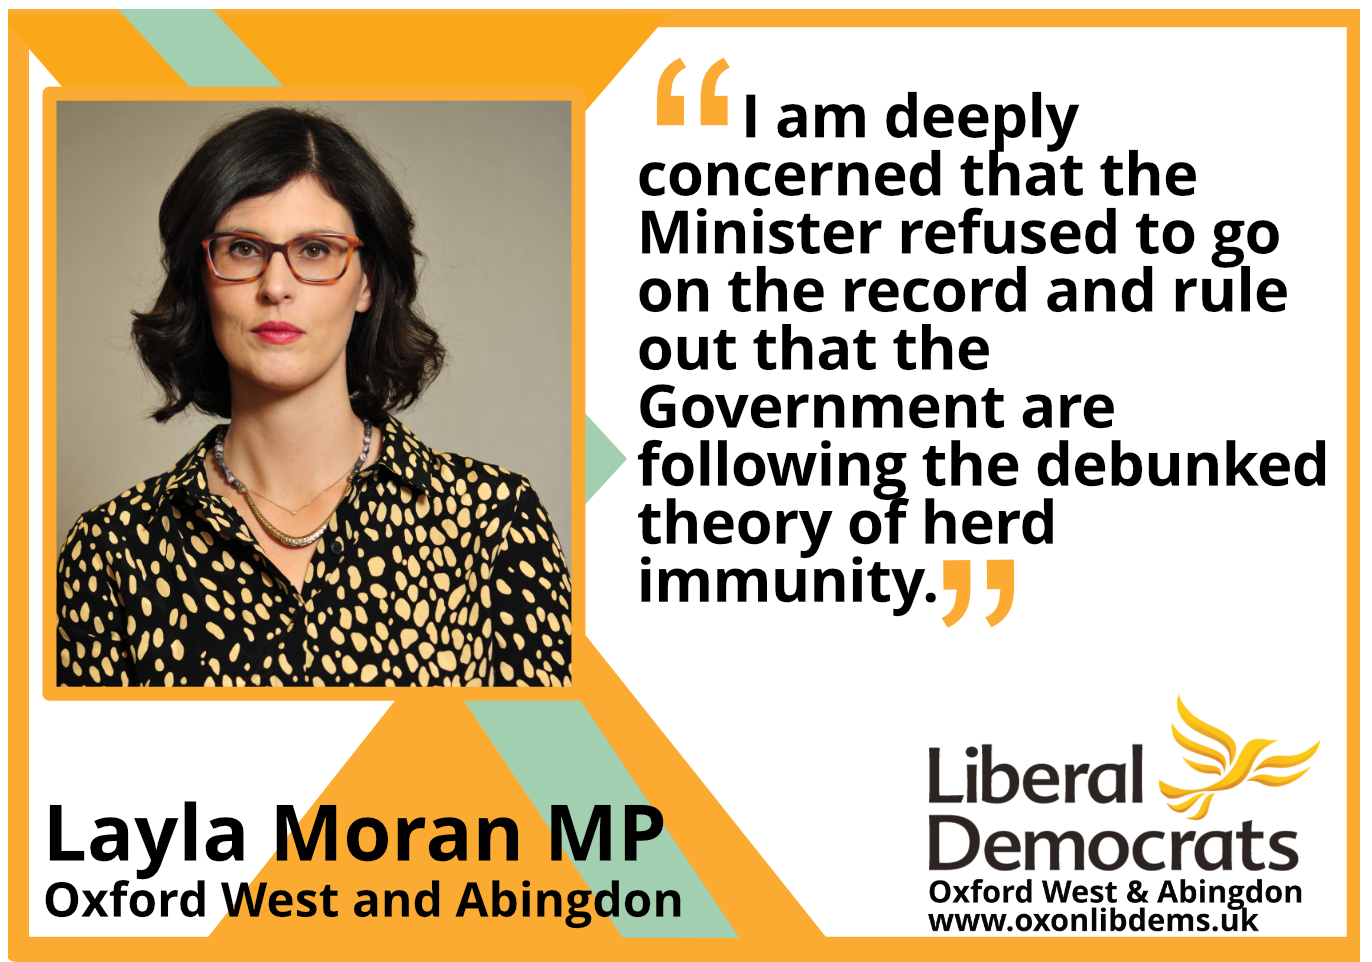 """key_I am deeply concerned that the Minister refused to go on the record and rule out that the Government are following the debunked theory of herd immunity.     """"It was deemed unattainable by the scientific community a long time ago."""